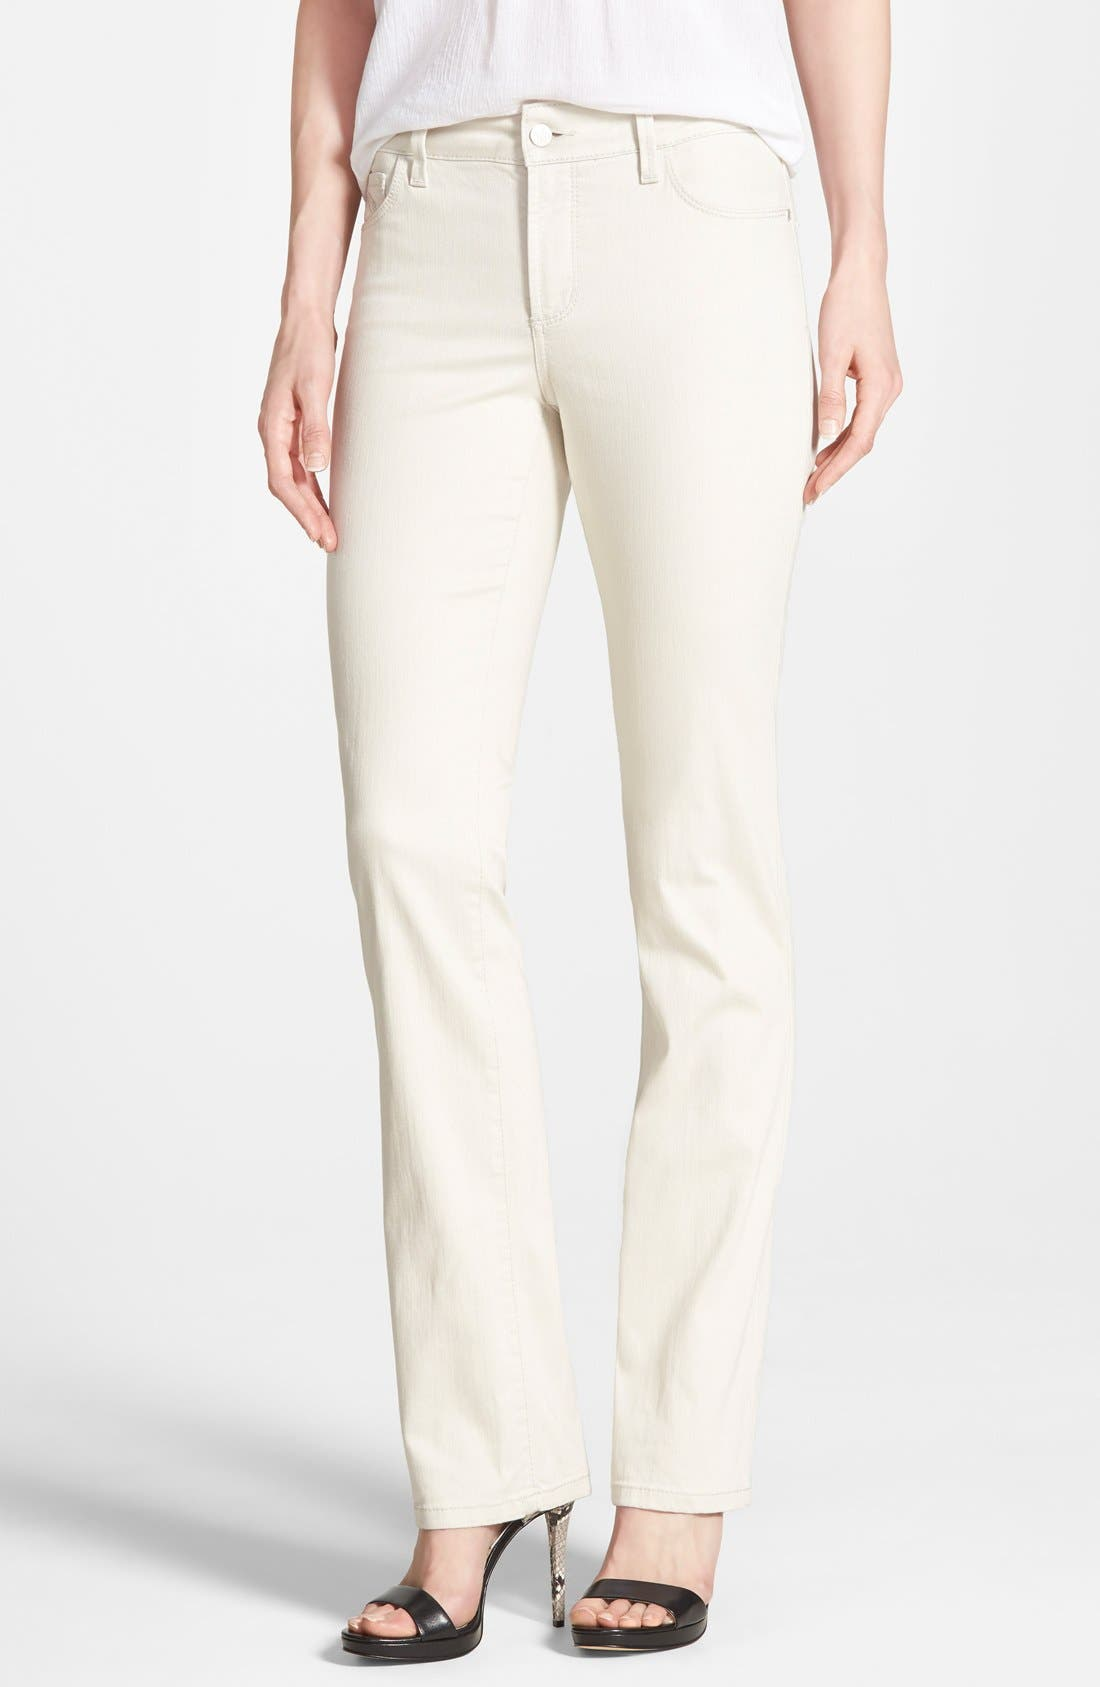 Alternate Image 1 Selected - NYDJ 'Marilyn' Stretch Straight Leg Jeans (Regular & Petite)